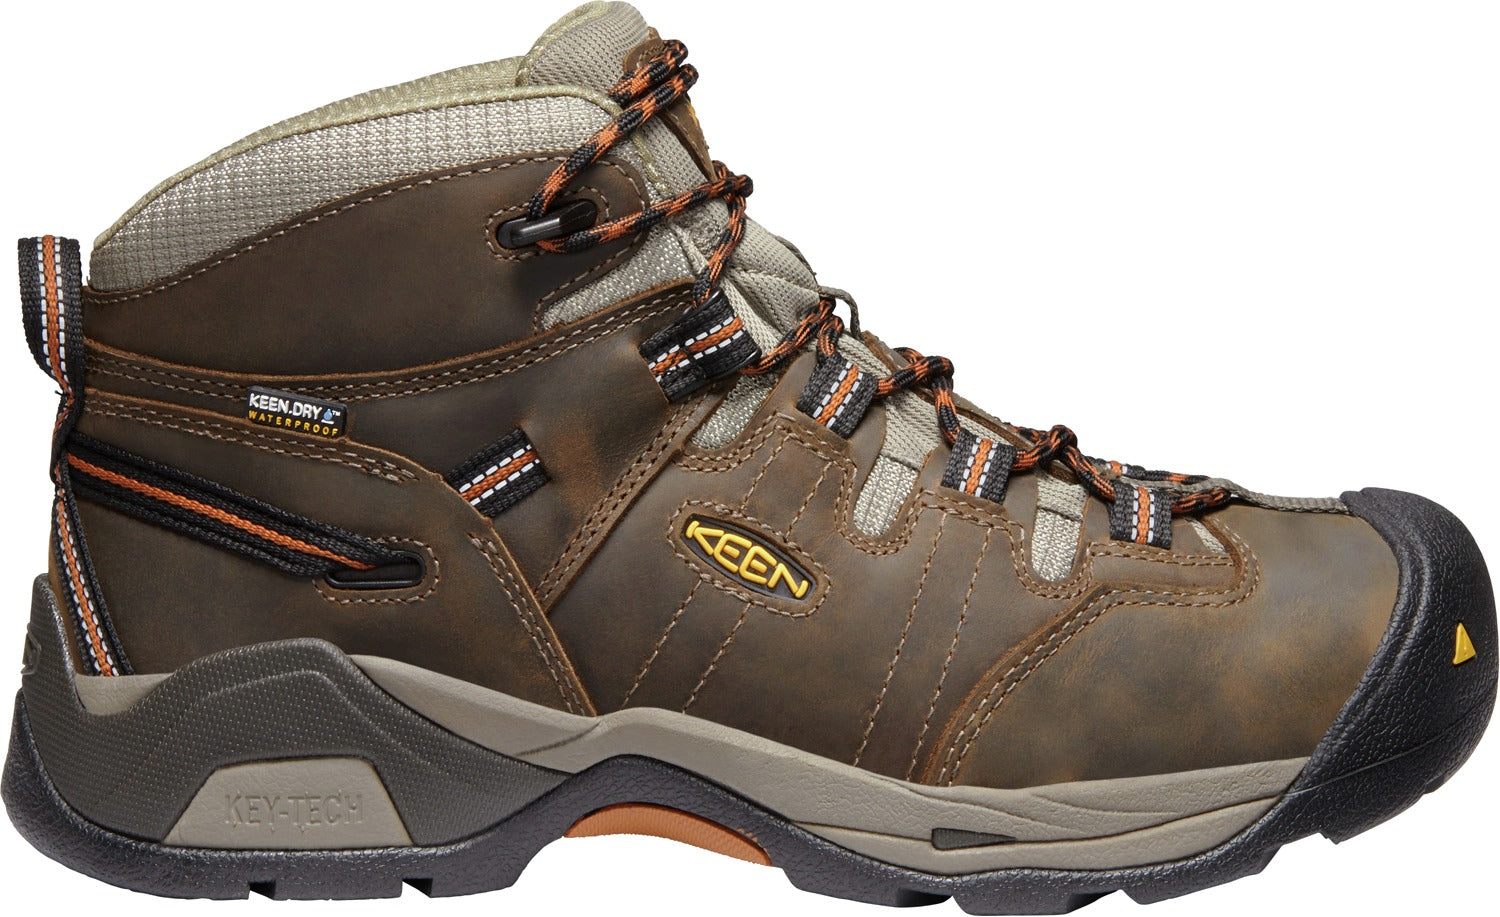 5be3641a1802 Detroit XT Mid Waterproof Soft Toe - Black Olive   Leather Brown ...